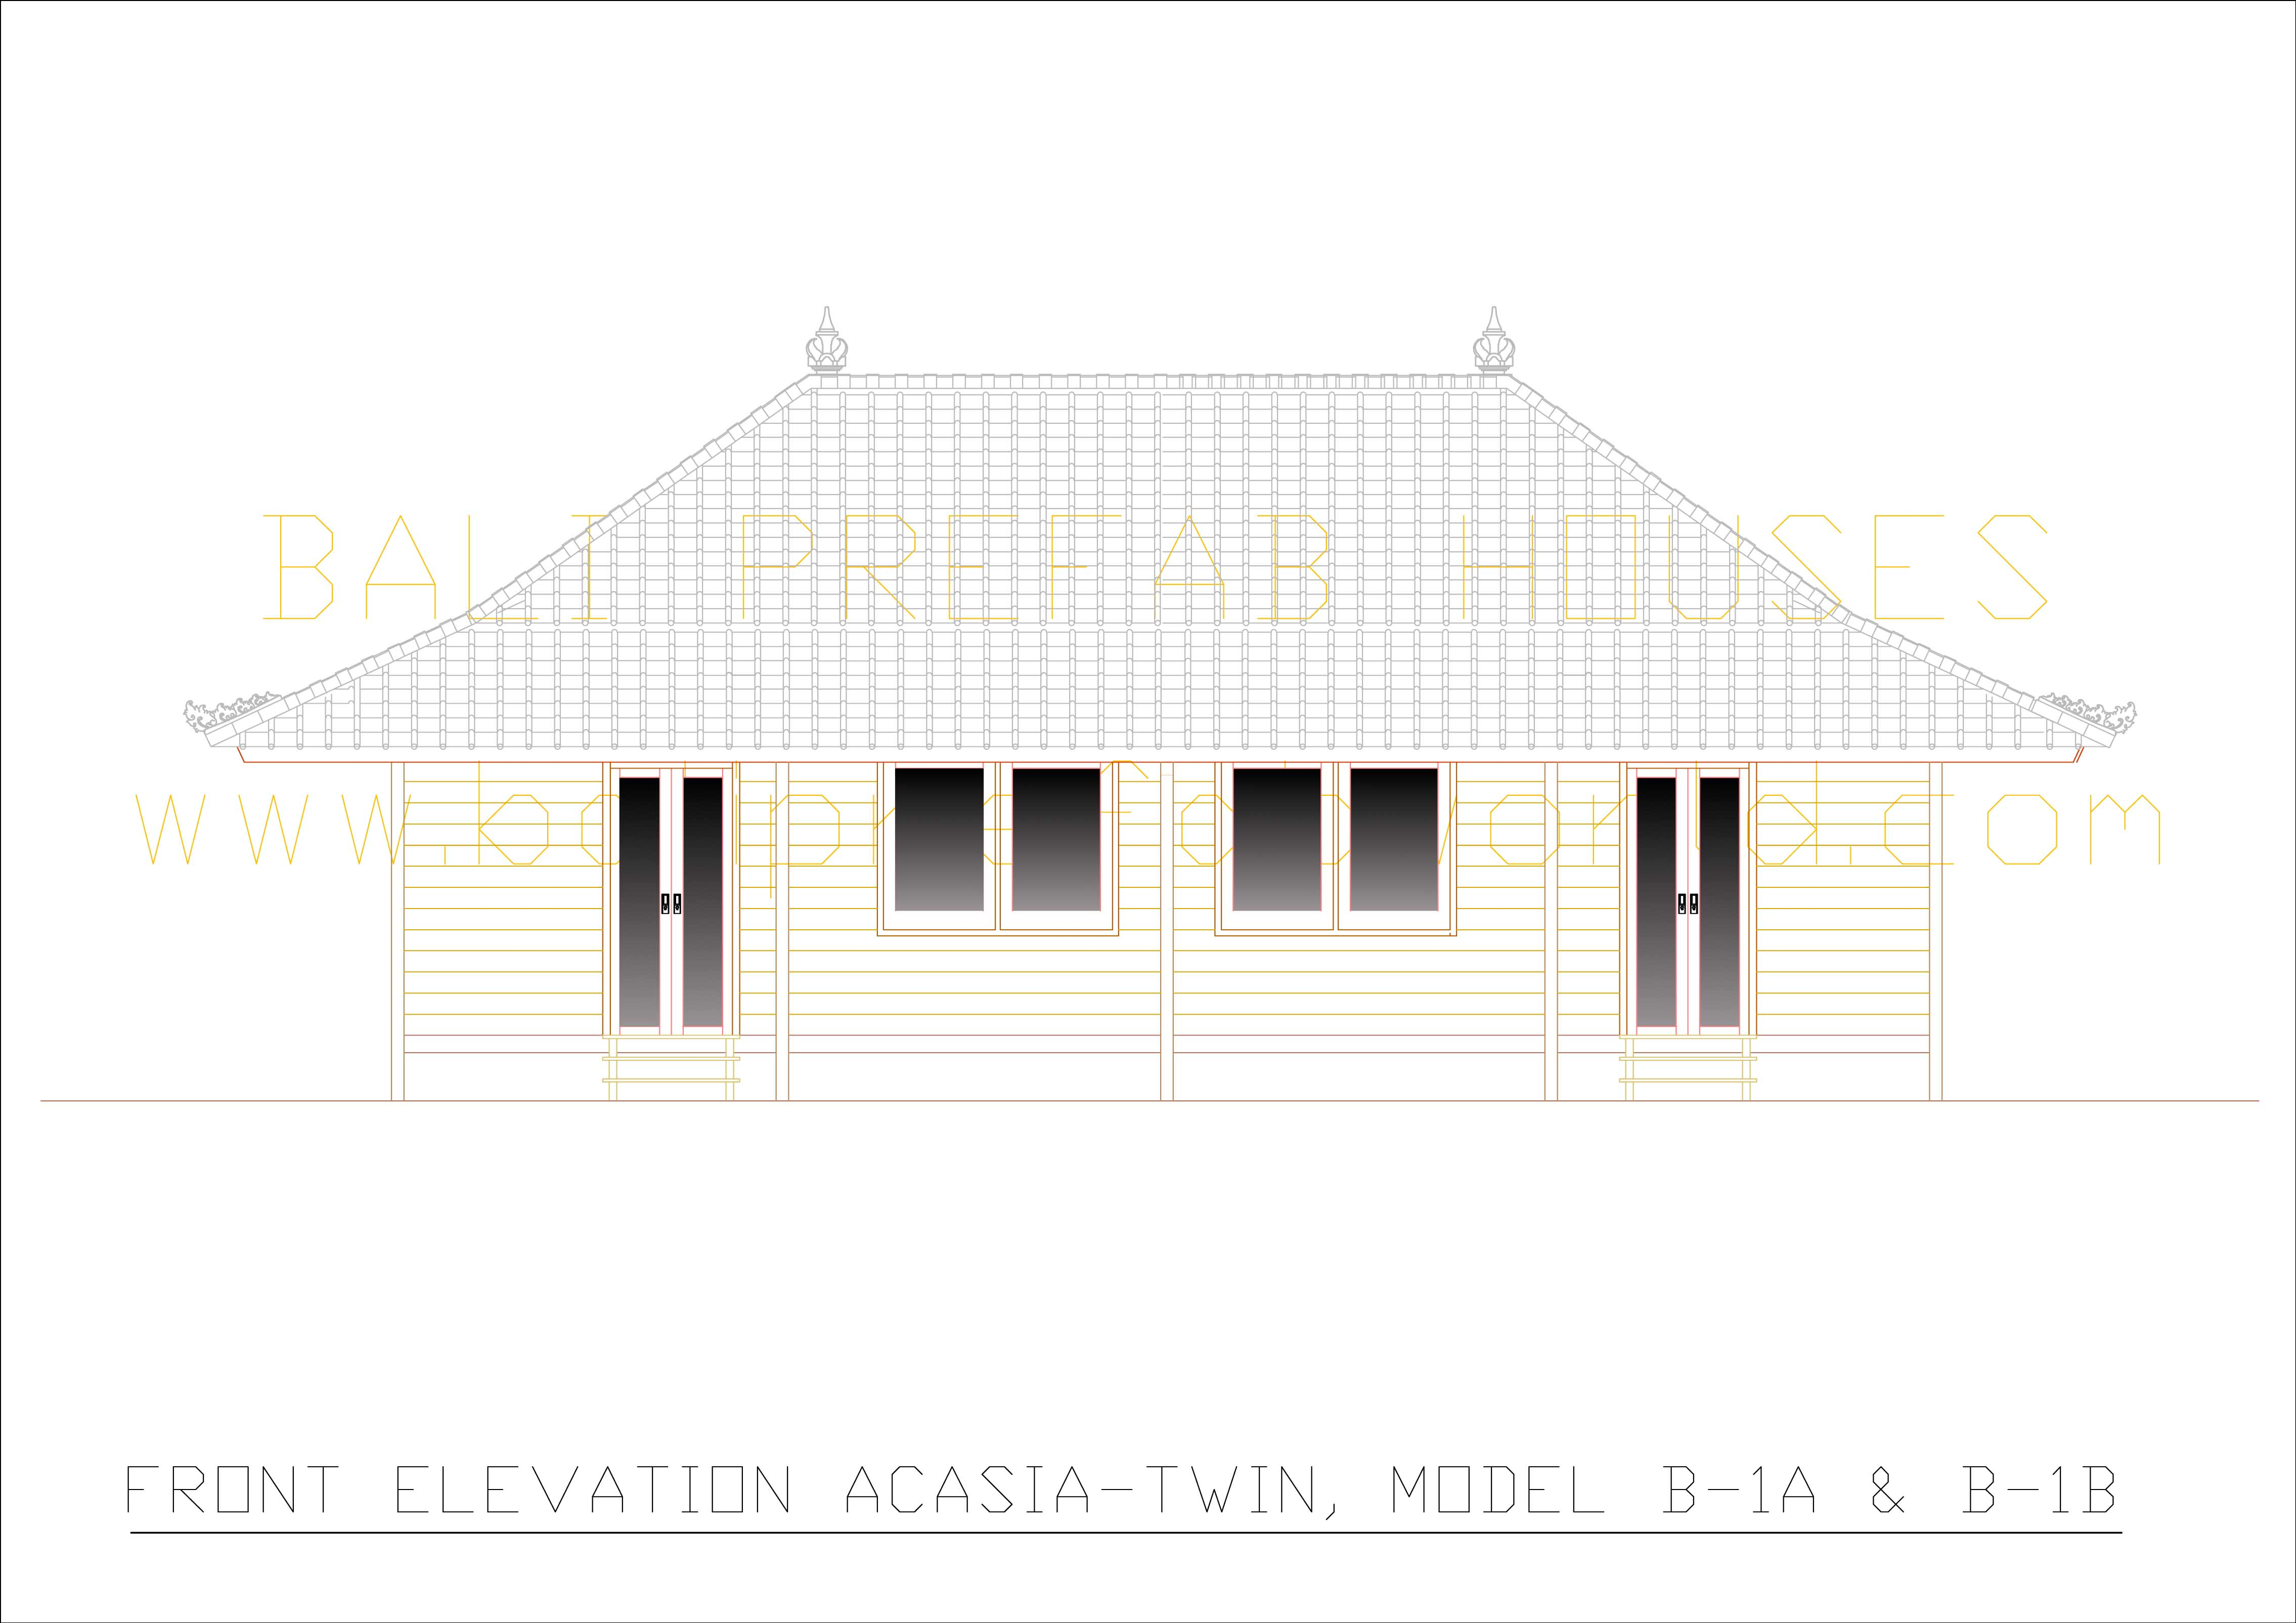 Acasia-twin front elevation